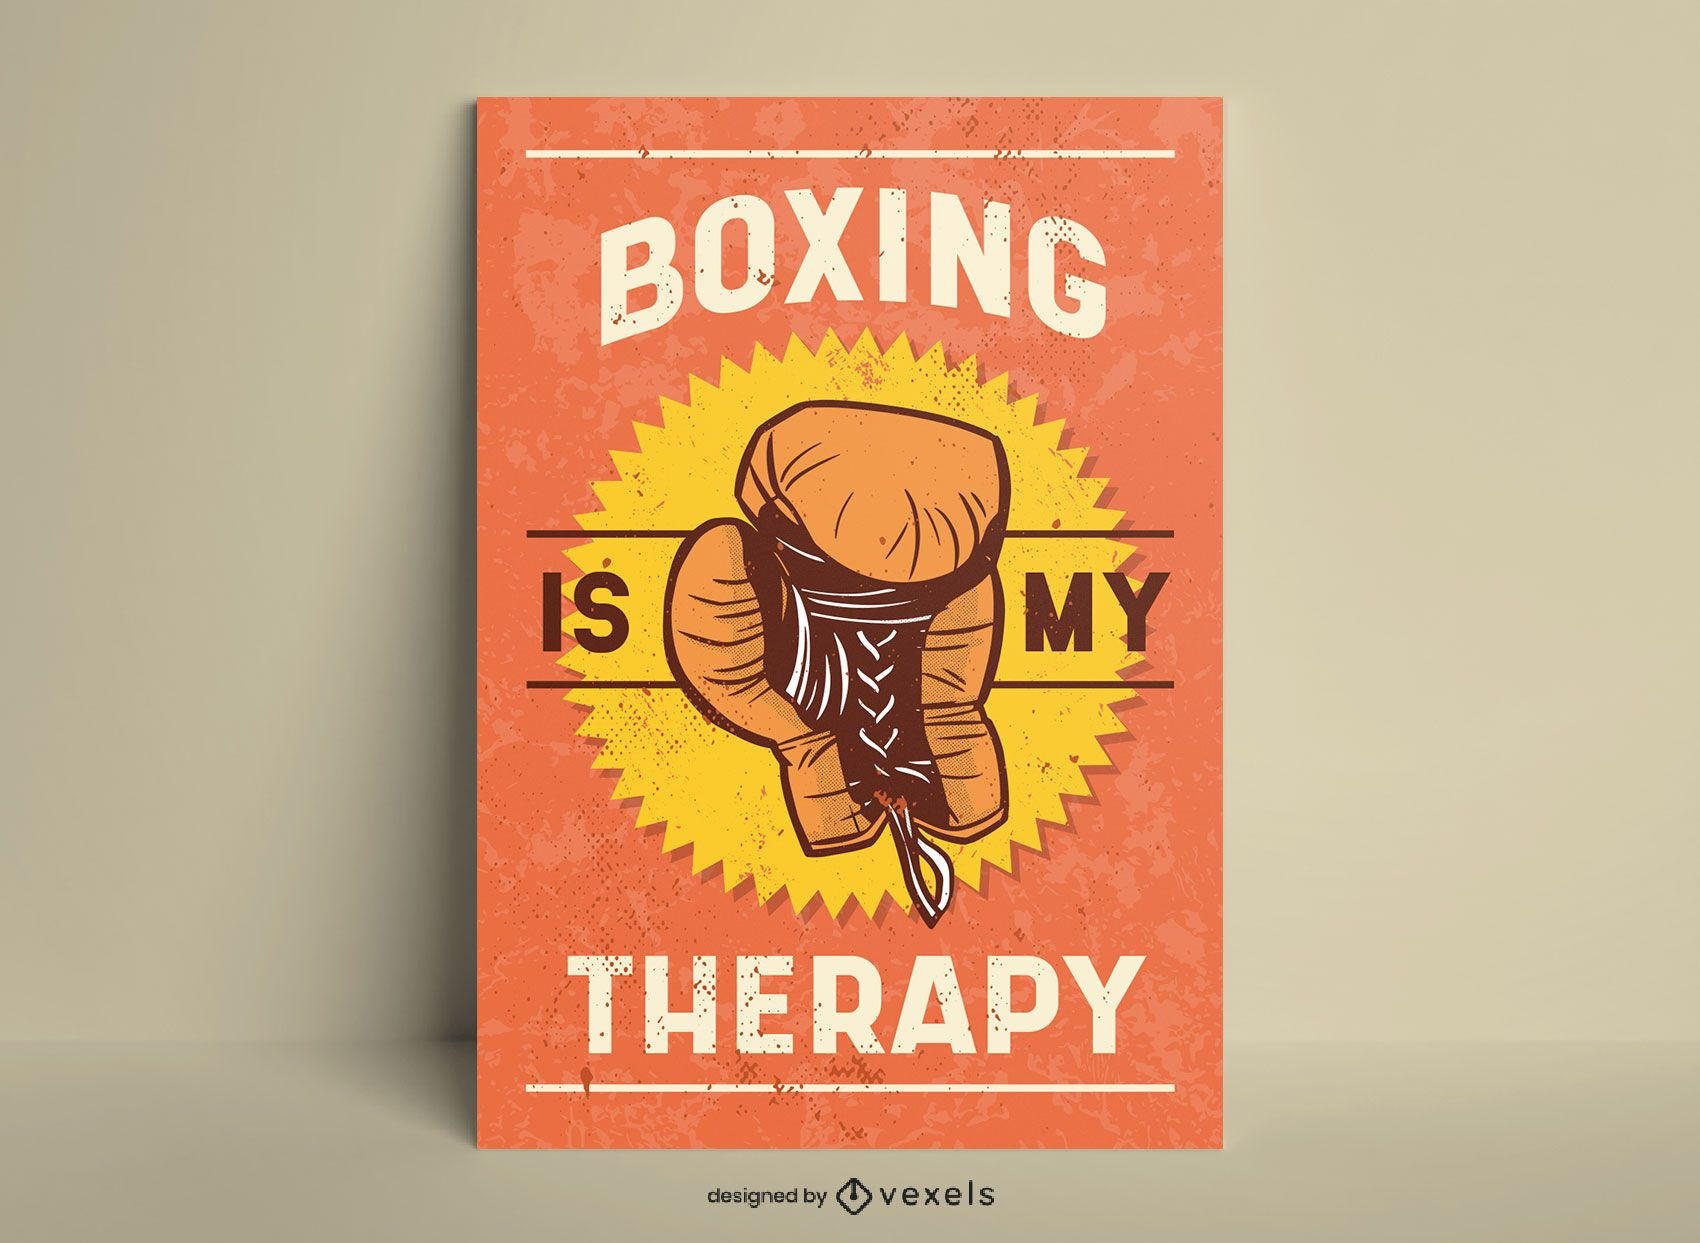 Boxing is my therapy vintage style poster